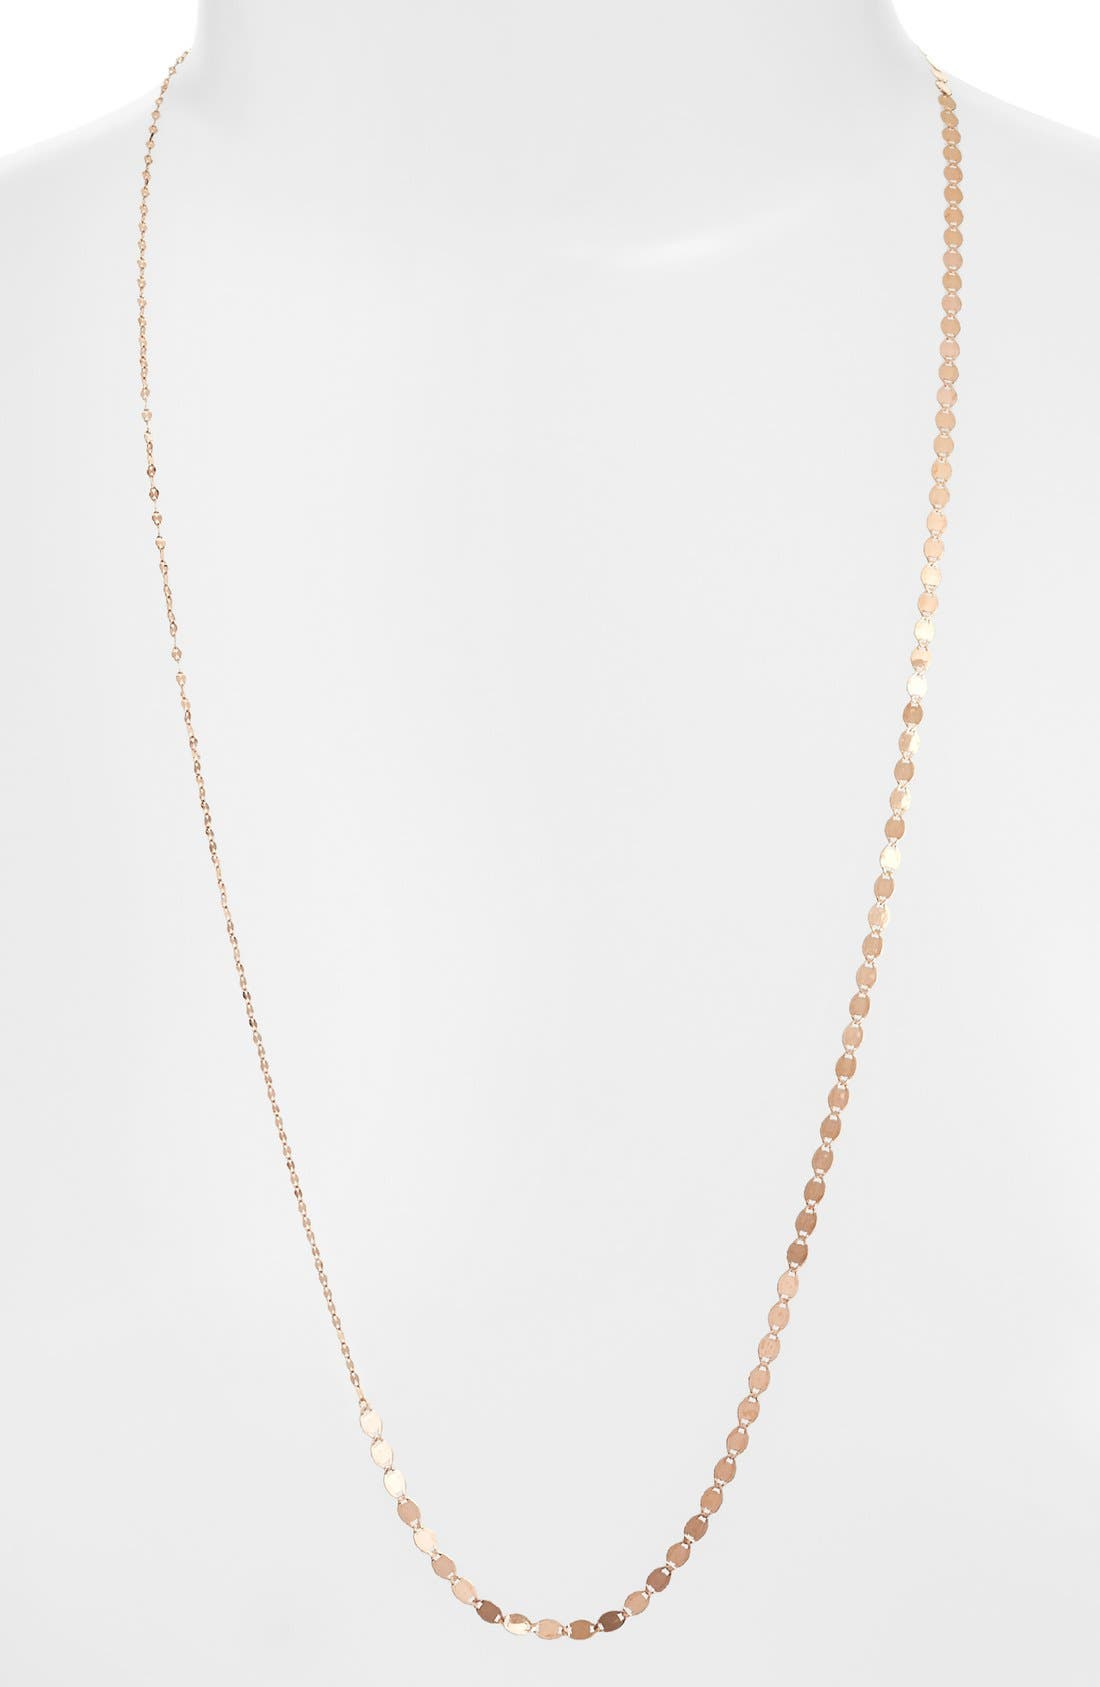 Lana Jewelry 'Long Vanity' Strand Necklace